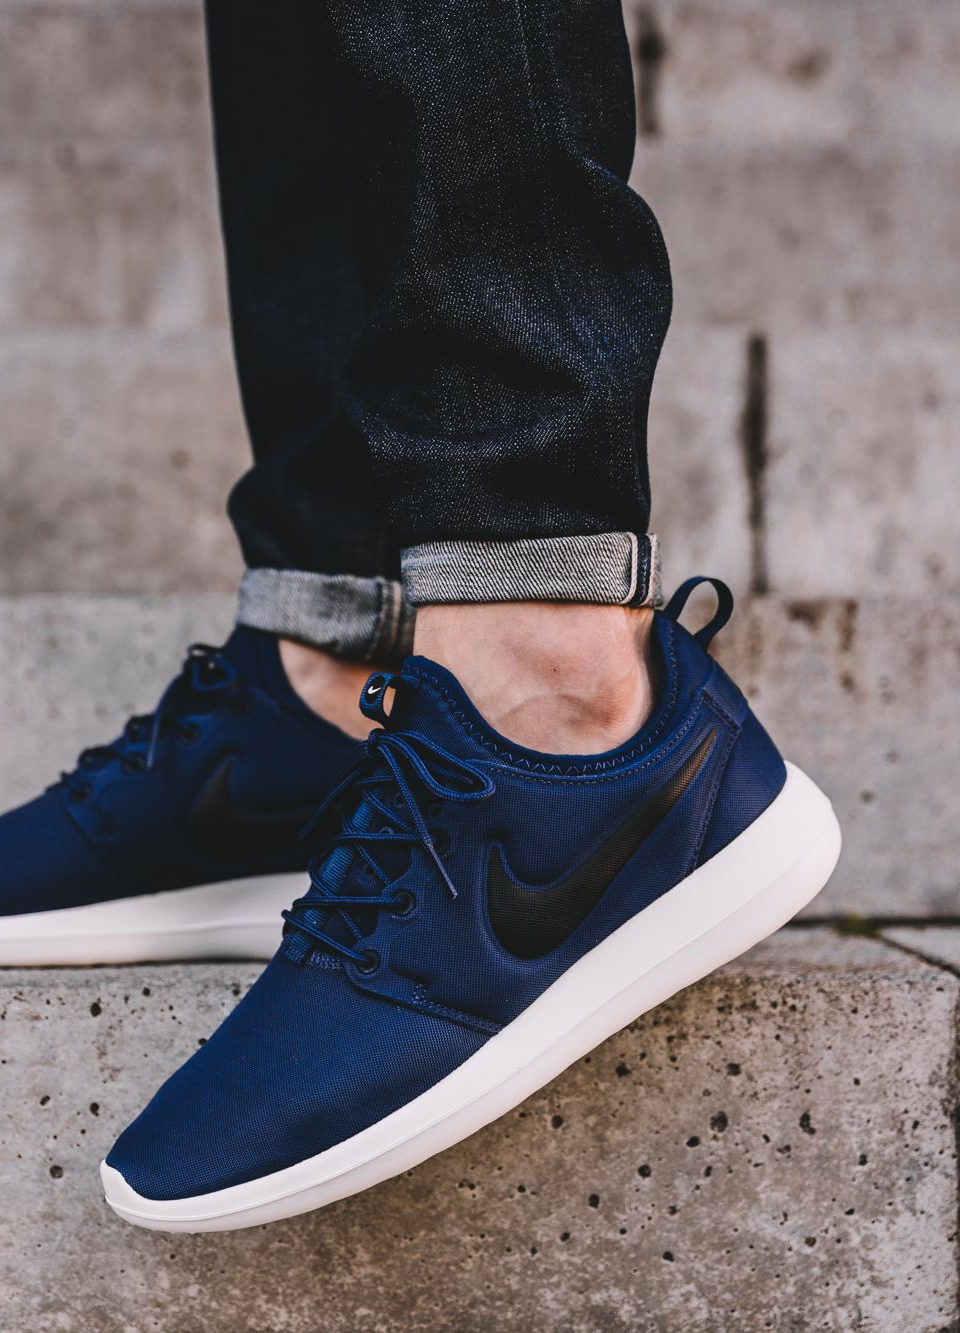 Nike Nike Roshe Two Trainers In Blue 844656 400 Asos